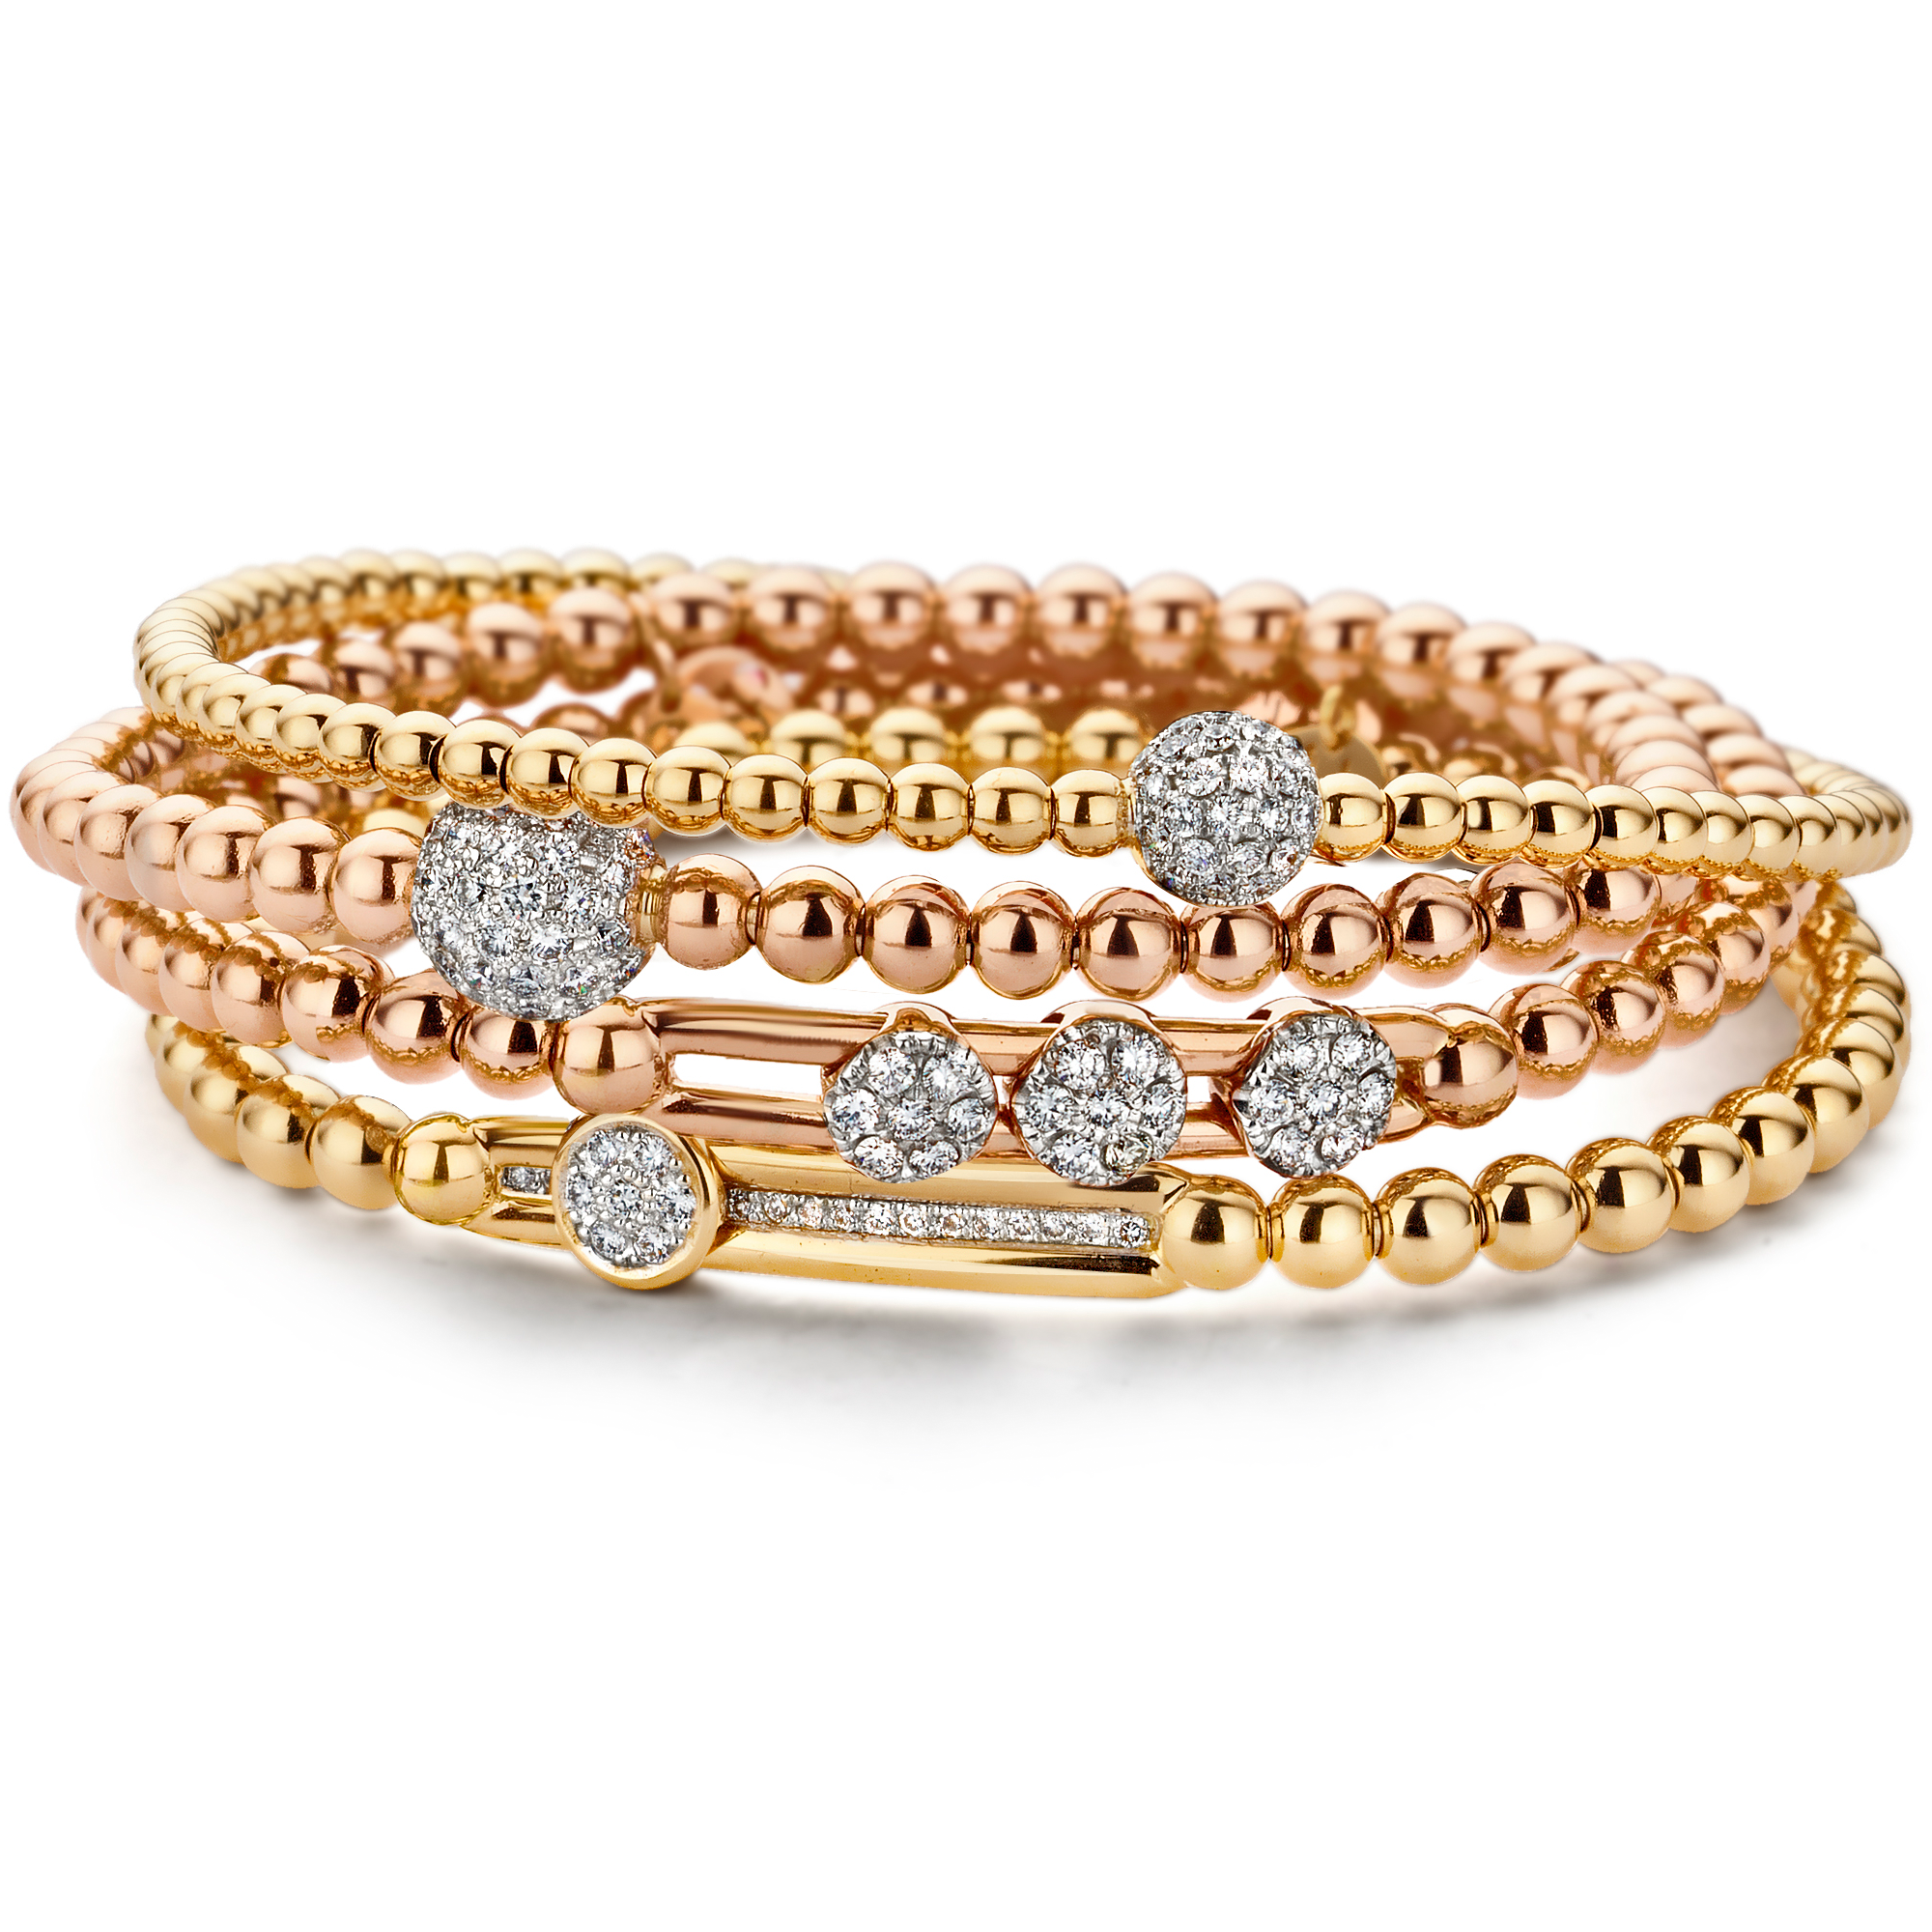 ltd gold remember jewellers while bracelets pvt nikita to a always yellow buy bangle diamond this bangles bracelet choosing tips